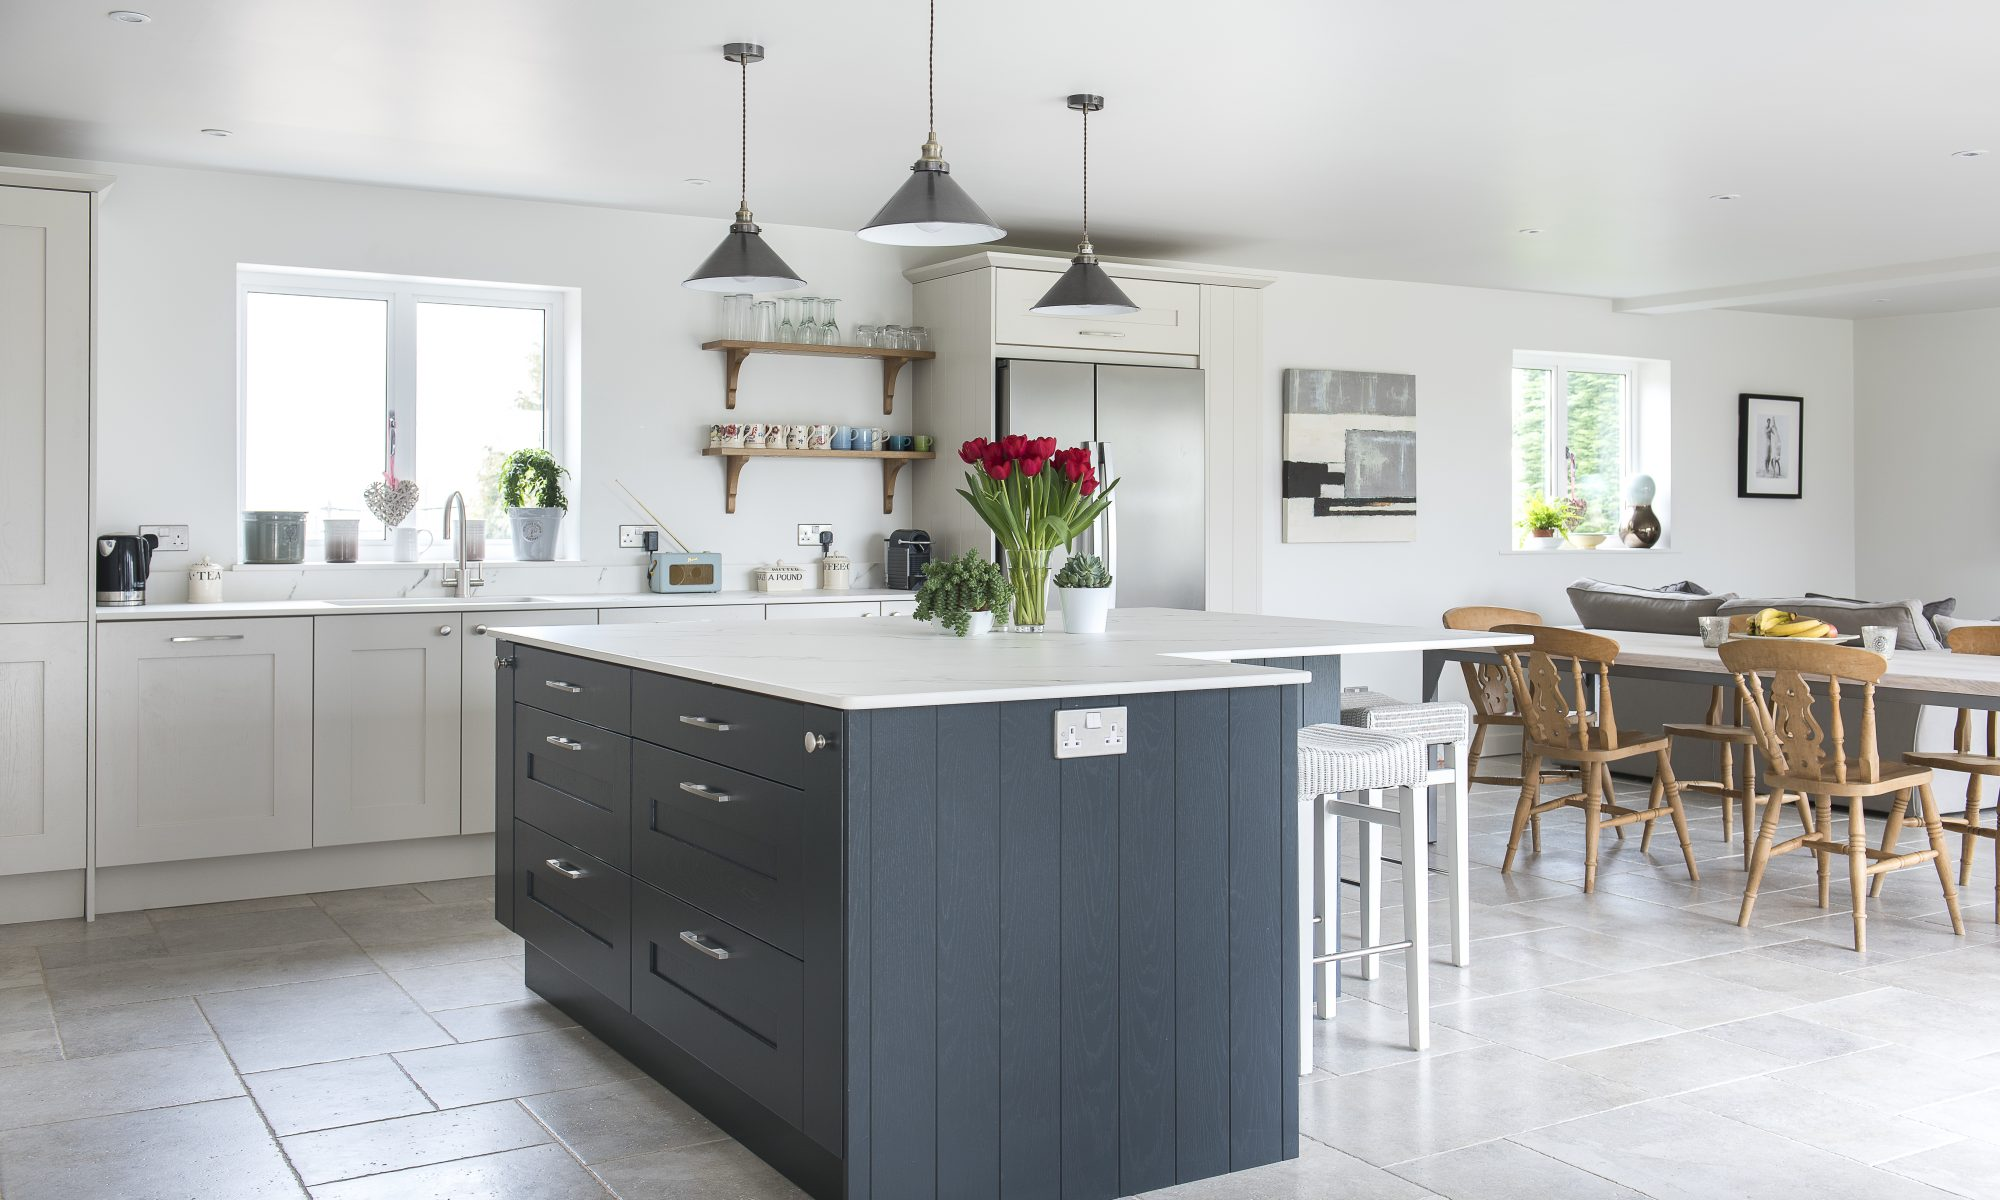 A classic monochrome kitchen, contemporary but still cosy. From £20,000 01580 291221 jminteriorsuk.uk